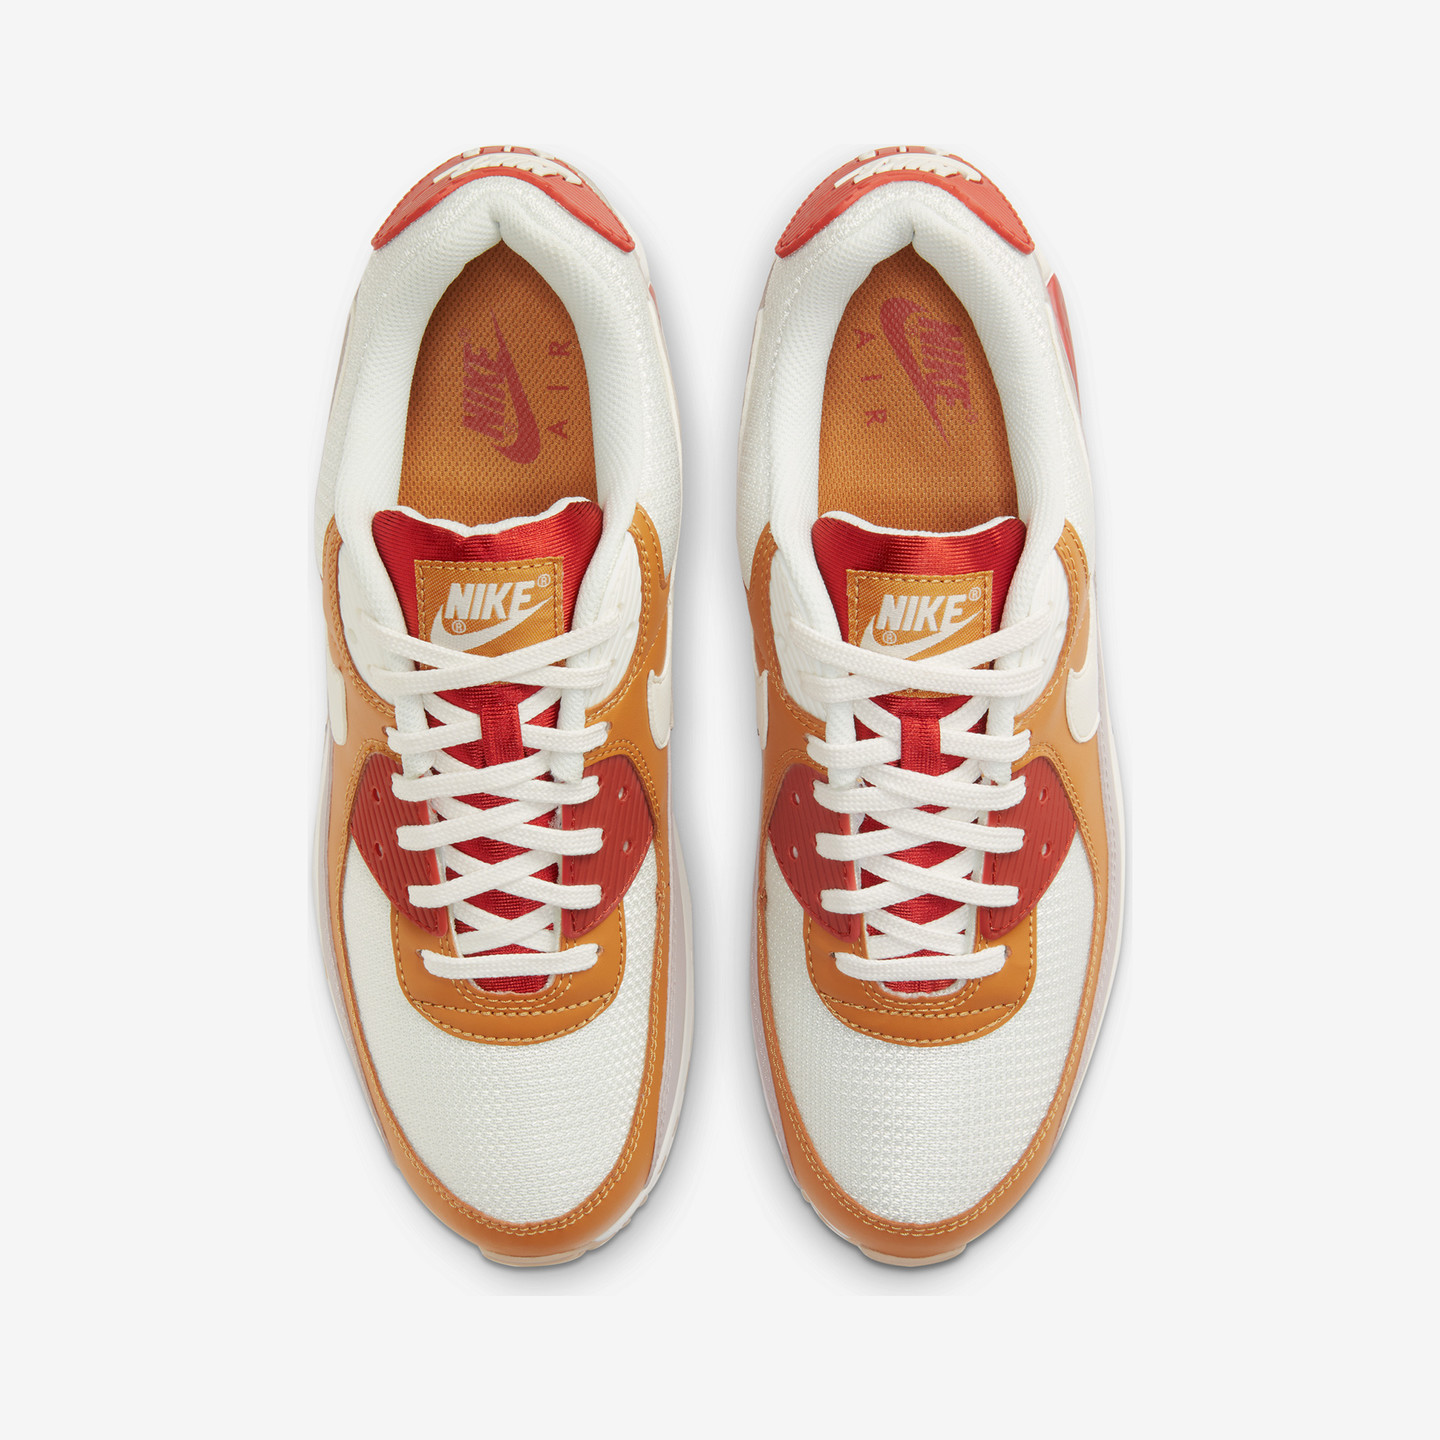 Nike Air Max 90 Rugged Orange / Sail / Wheat / Gum /  Light Brown CV8839-800